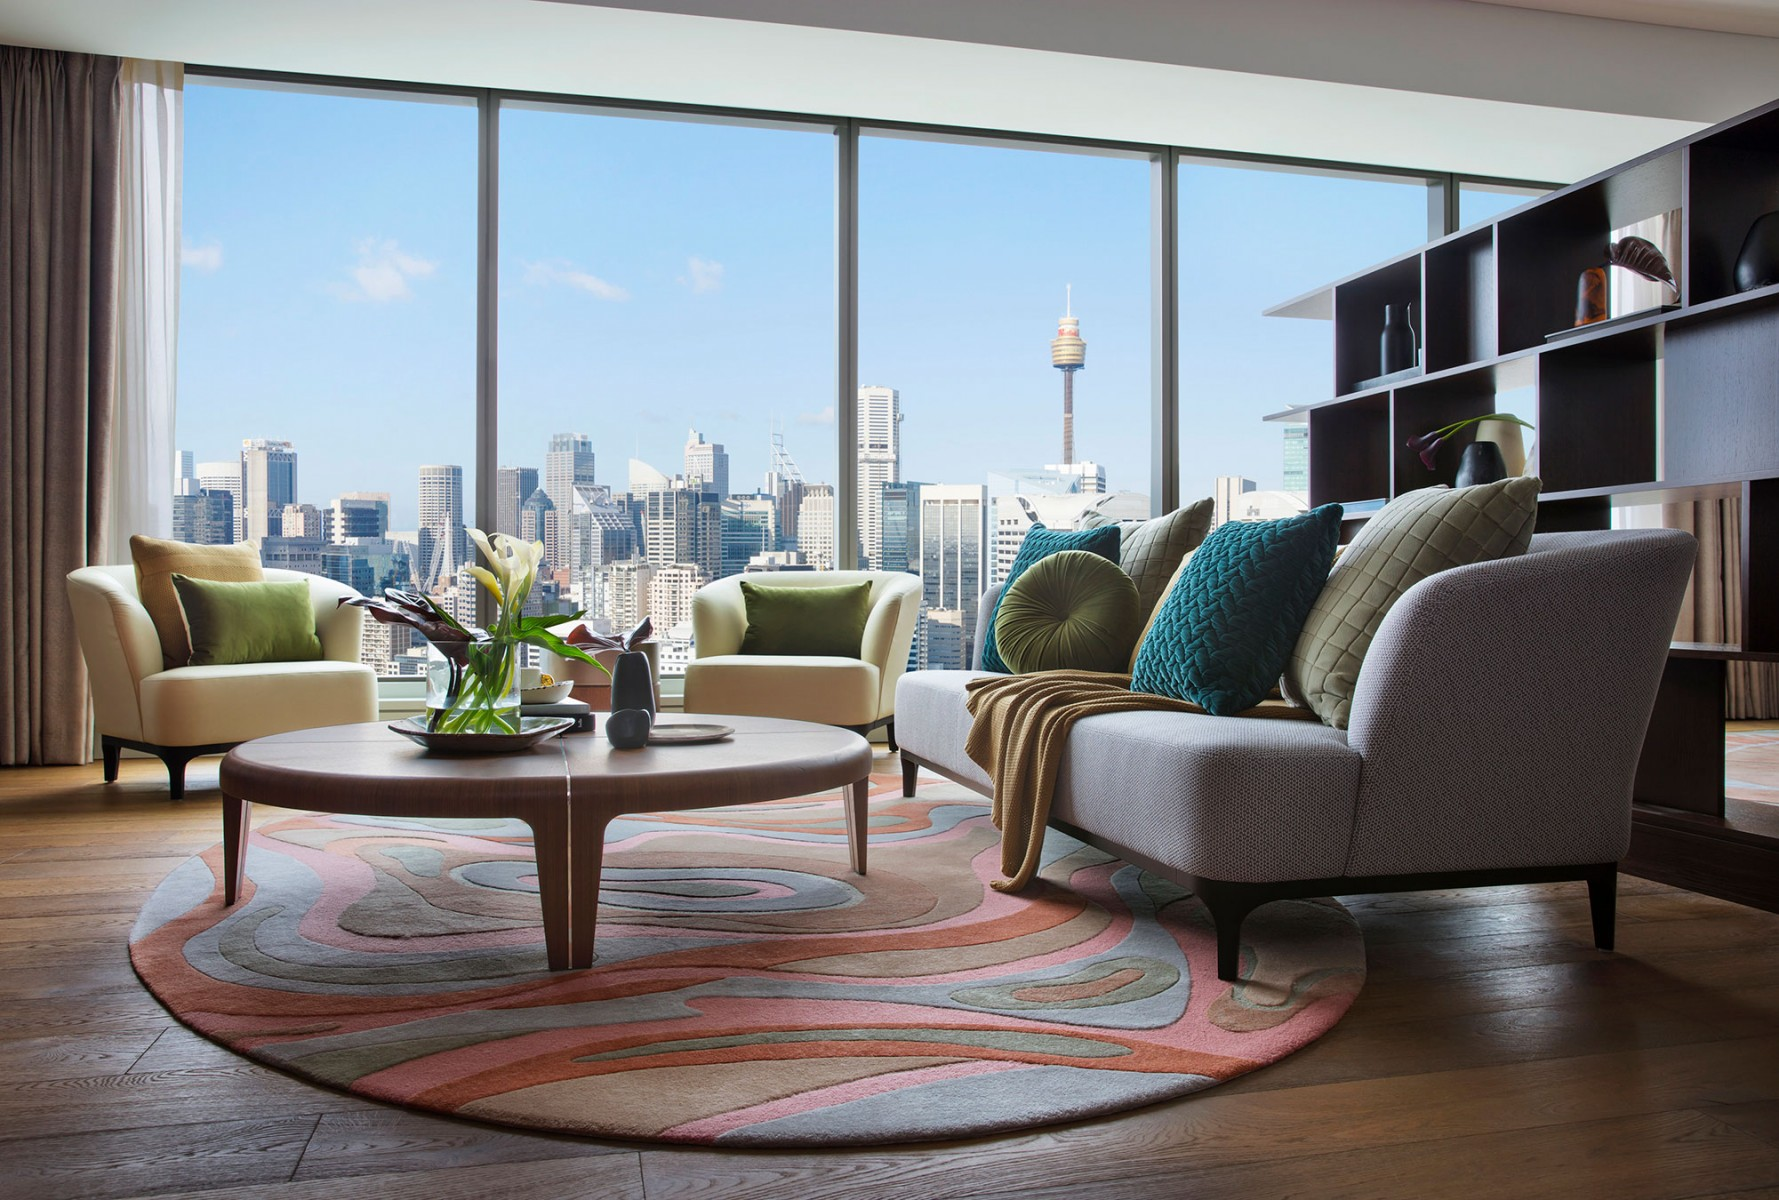 Sofitel Sydney Darling Harbour 3